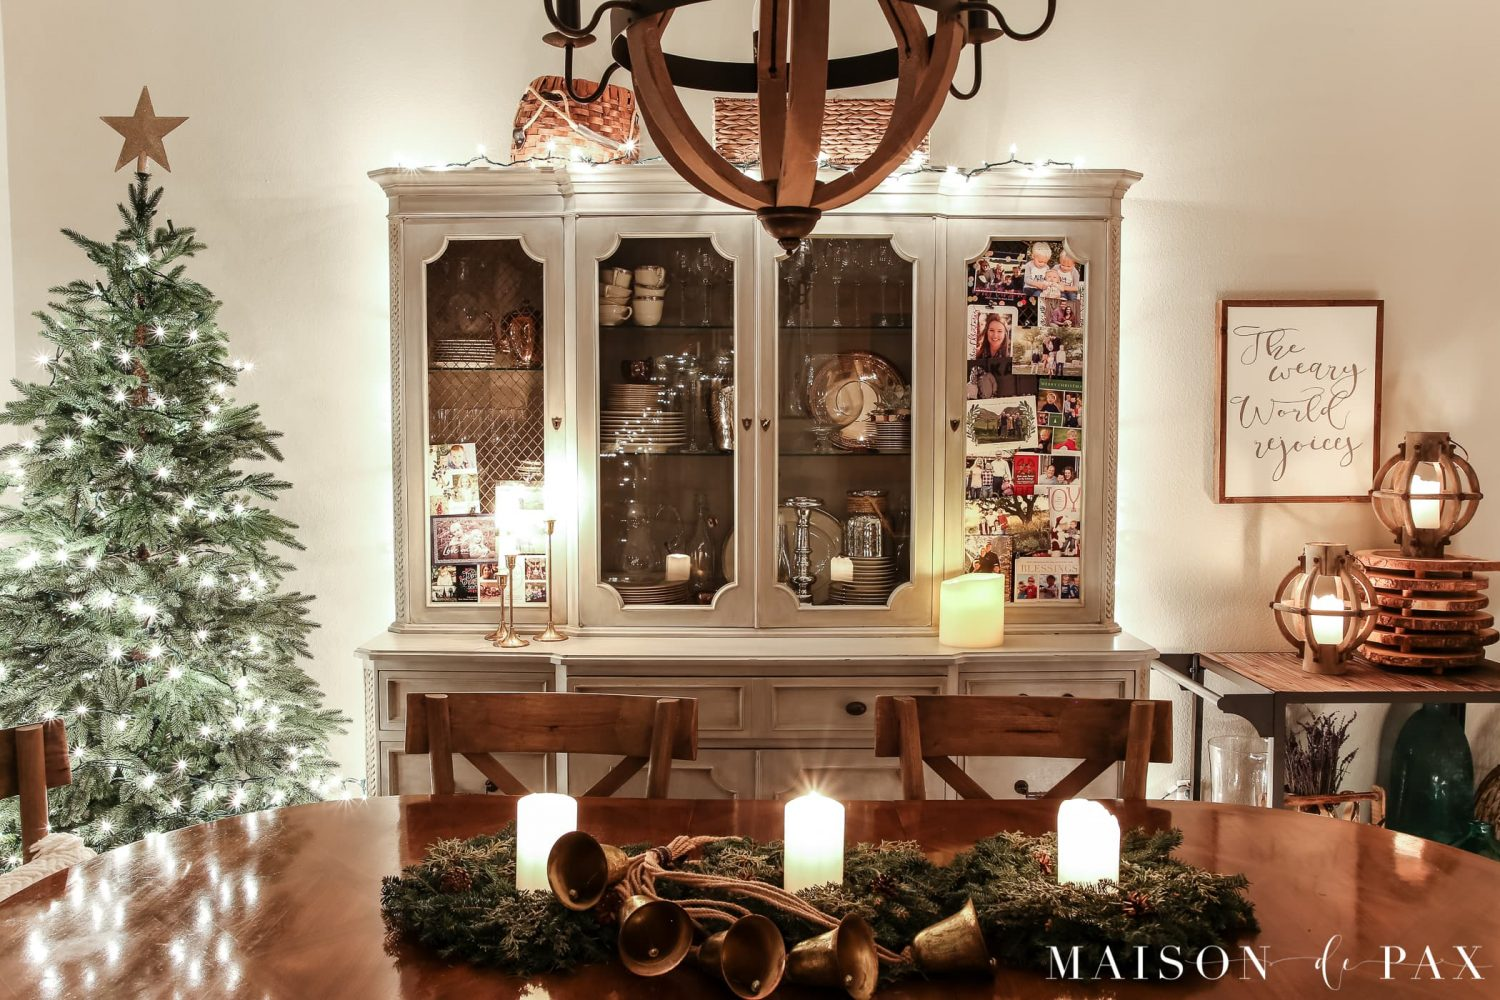 china cabinet strung with lights: gorgeous Christmas lights at night in these 25+ home tours #christmasnightstour #holidayhometour #christmaslights